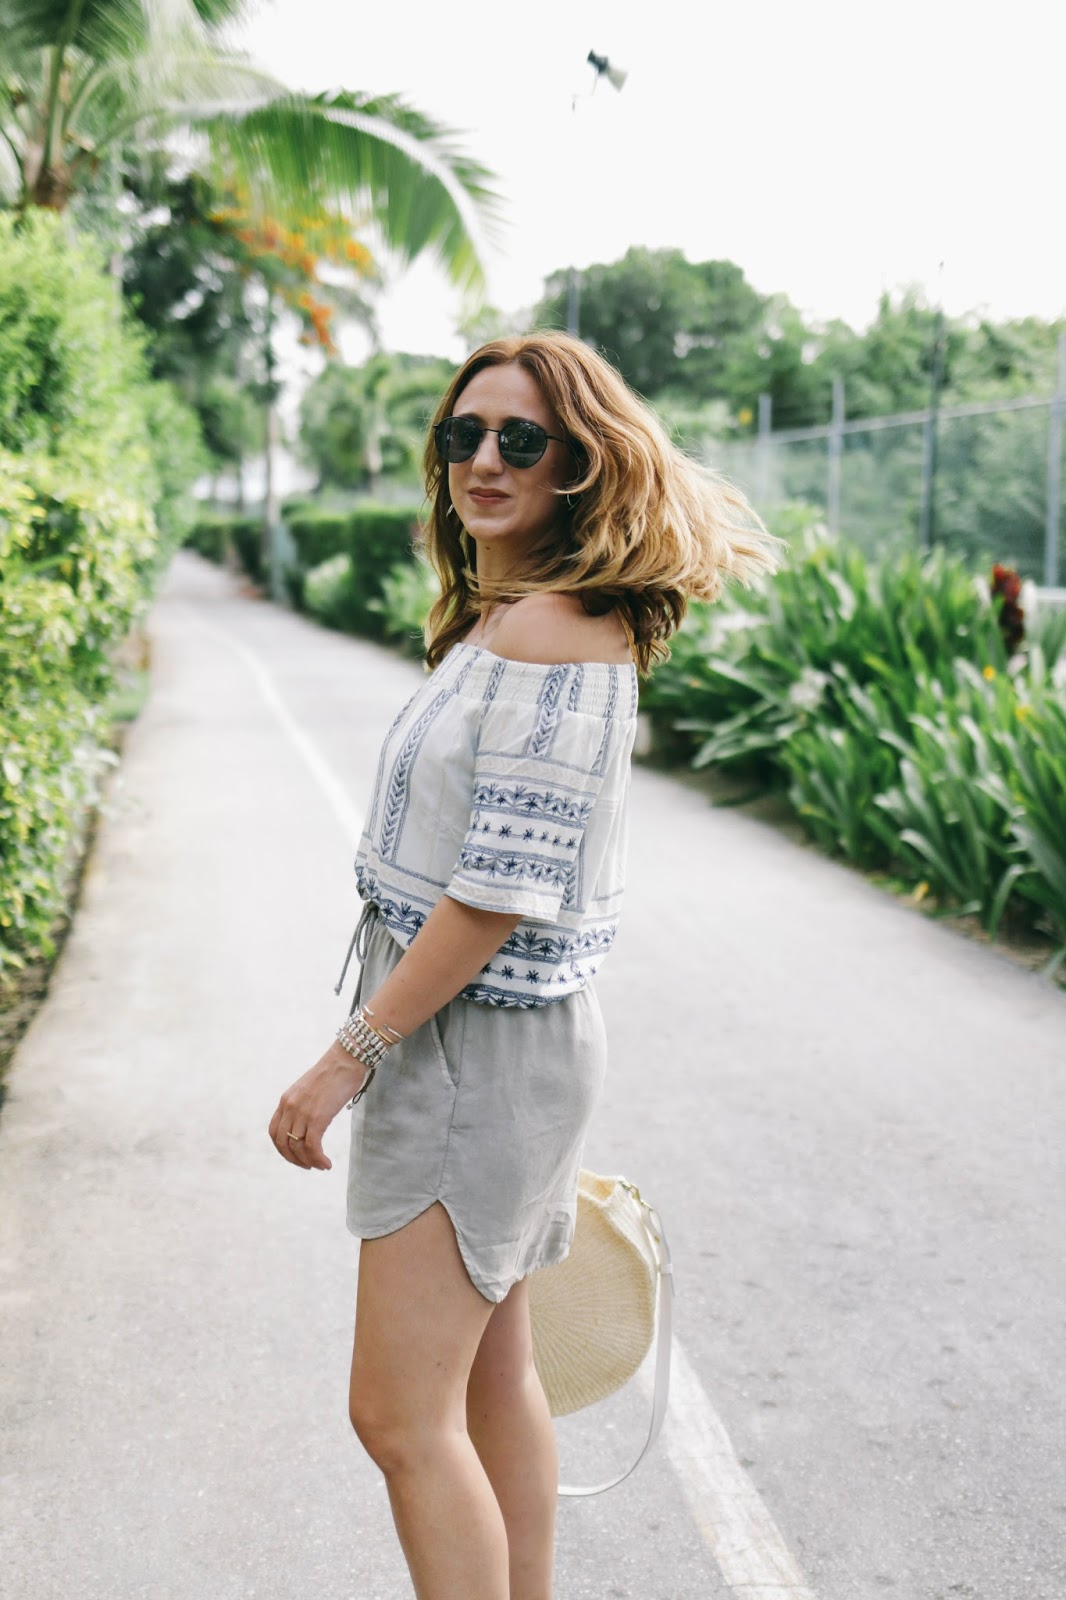 south moon under, outfit, travel style, travel outfit, punta cana, dominican republic, travel blogger, dreams resort, review, off the shoulder, lace up sandals, clare V bag, dc blog, blogger, style blog, fashion blog, inspo